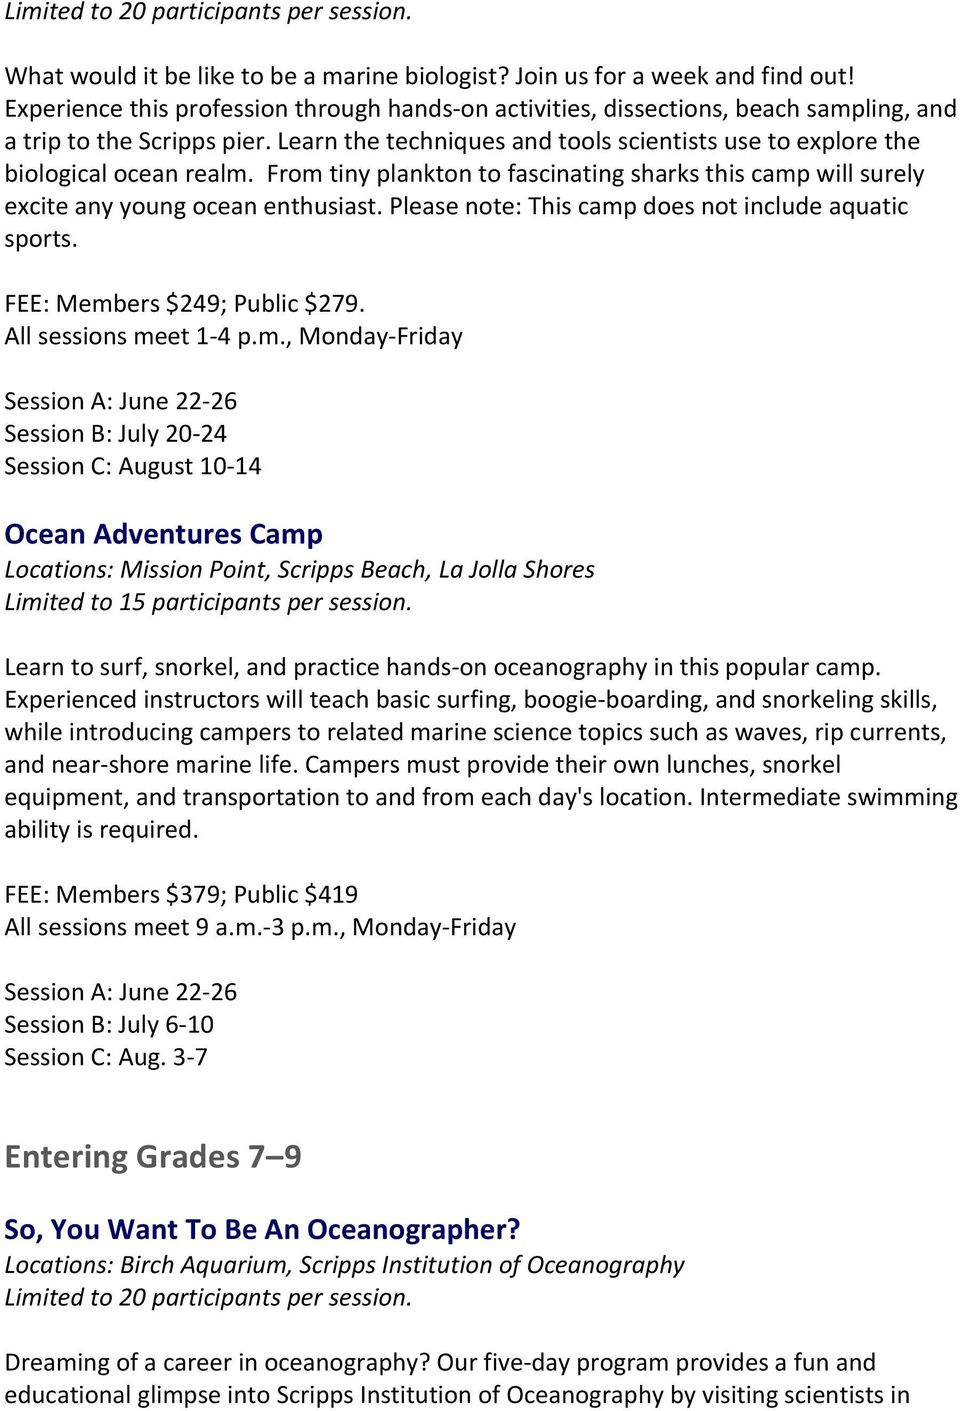 Learn the techniques and tools scientists use to explore the biological ocean realm. From tiny plankton to fascinating sharks this camp will surely excite any young ocean enthusiast.